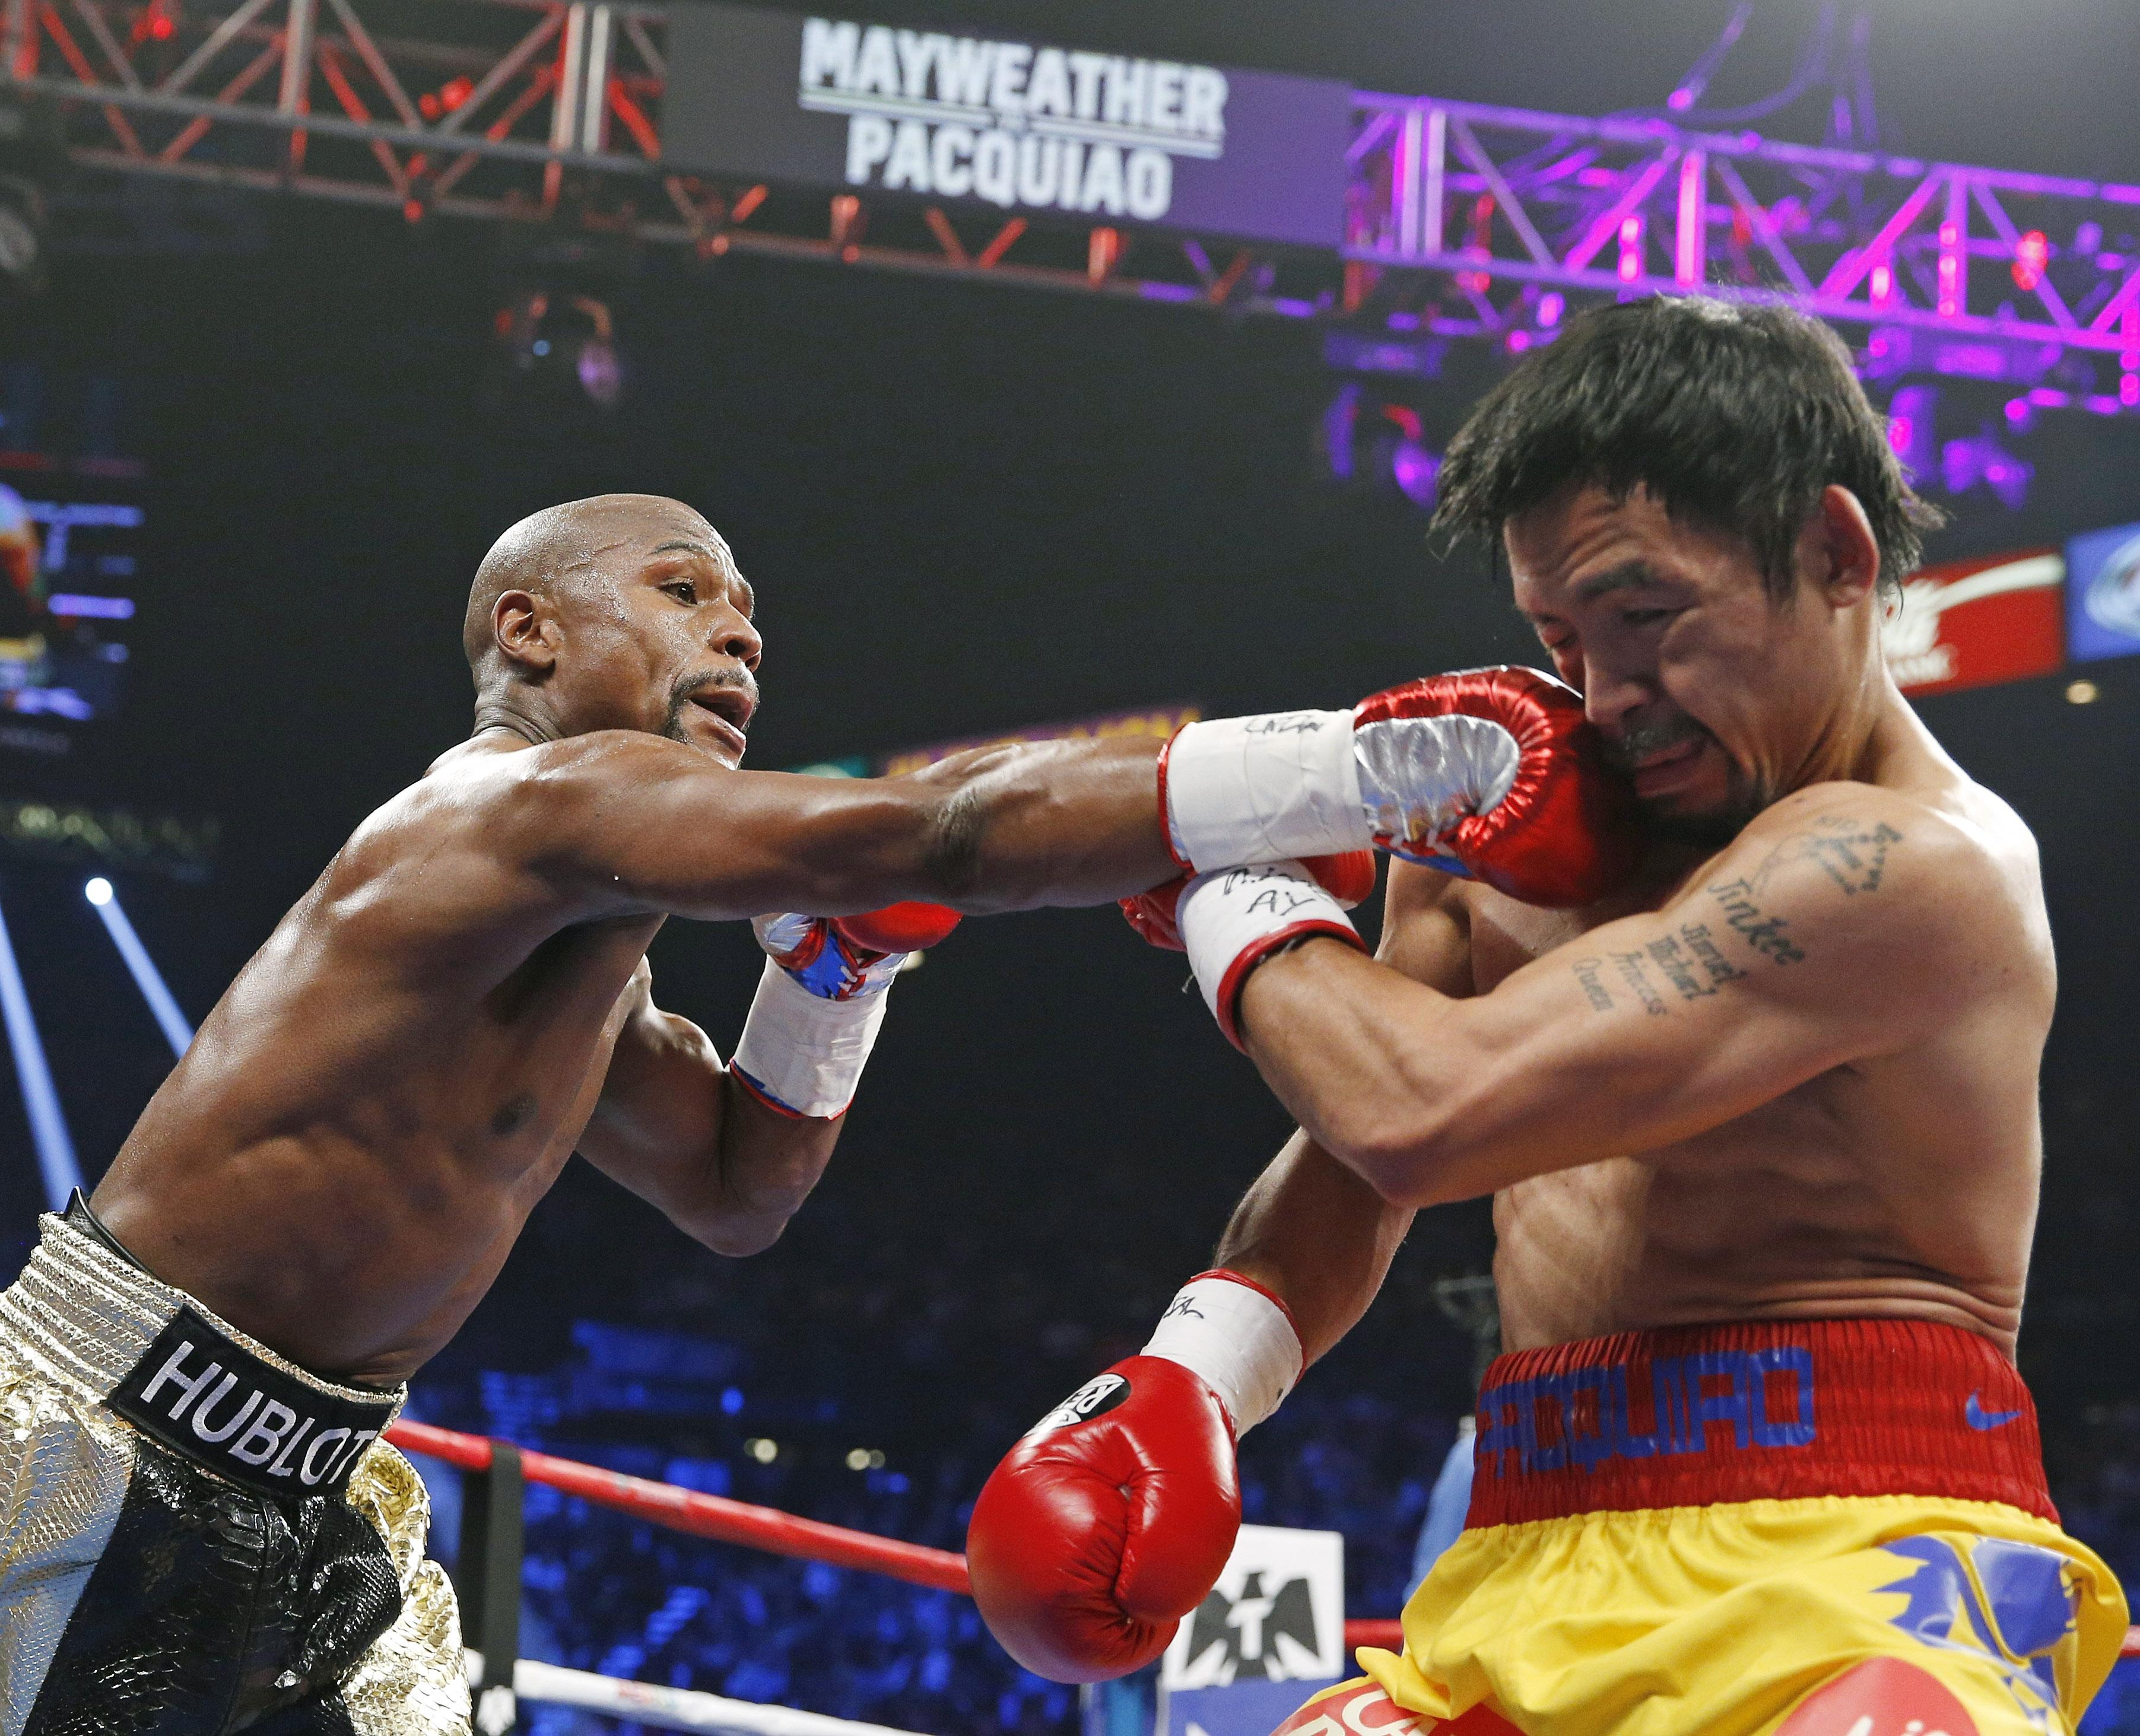 Highlights of the Mayweather-Pacquiao Fight